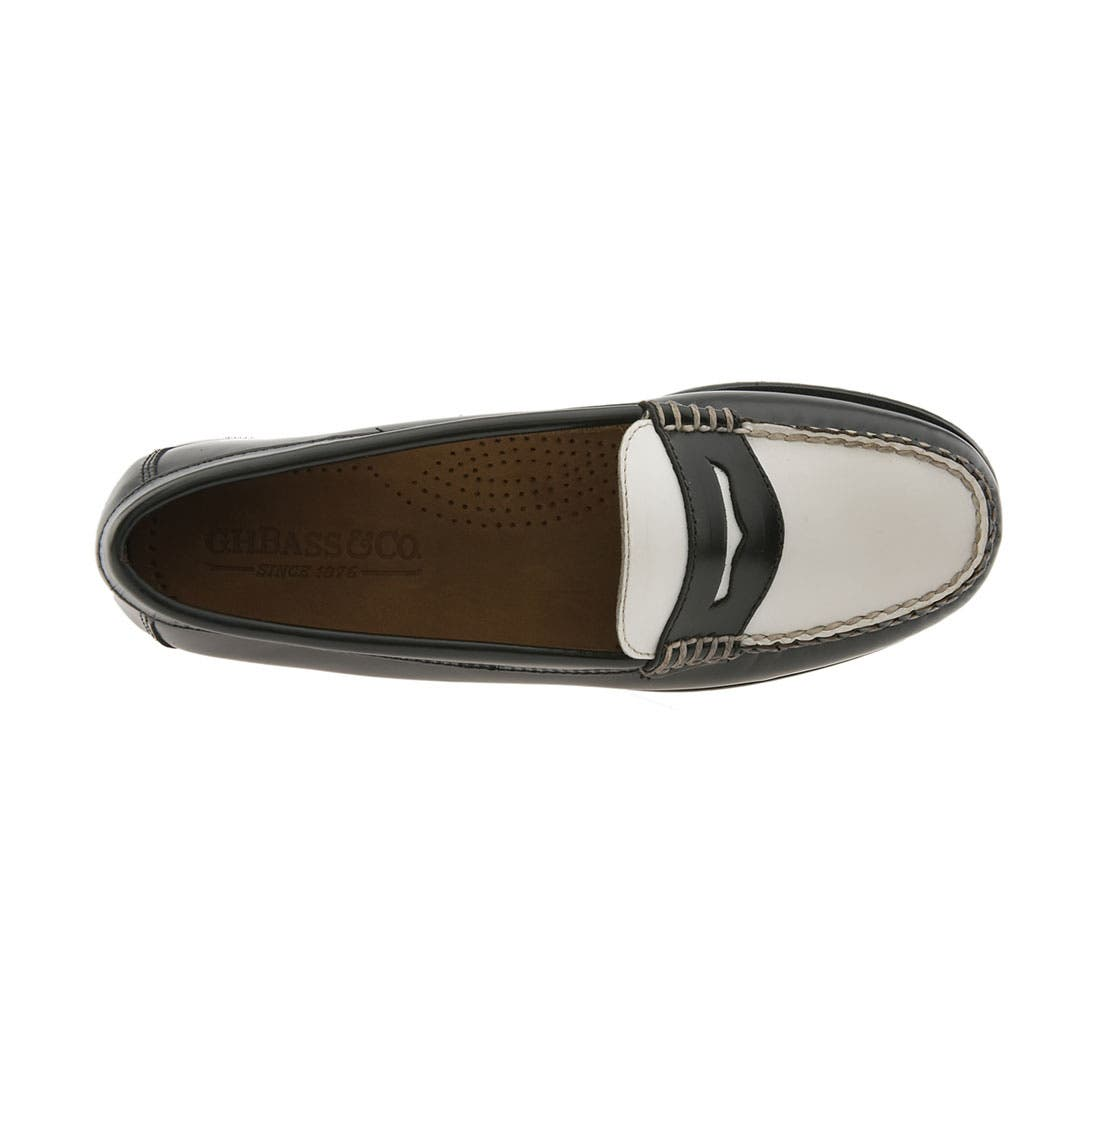 Alternate Image 3  - G.H. Bass & Co. 'Wayfarer' Loafer (Women)